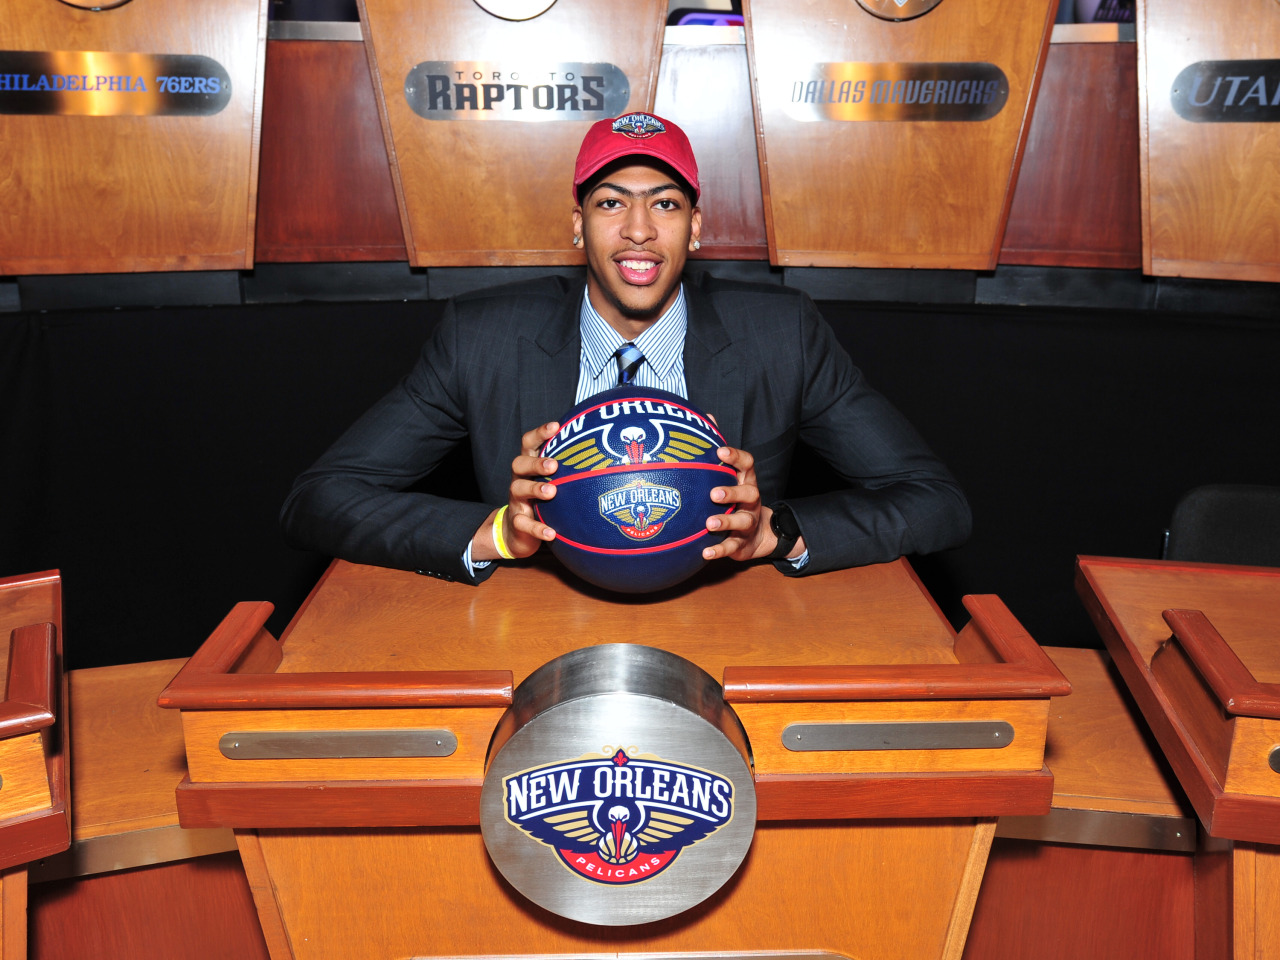 nba:  Anthony Davis of the New Orleans Pelicans poses for a photo prior to the 2013 NBA Draft Lottery on May 21, 2013 at the ABC News' 'Good Morning America' Times Square Studio in New York City.  (Photo by David Dow/NBAE via Getty Images)